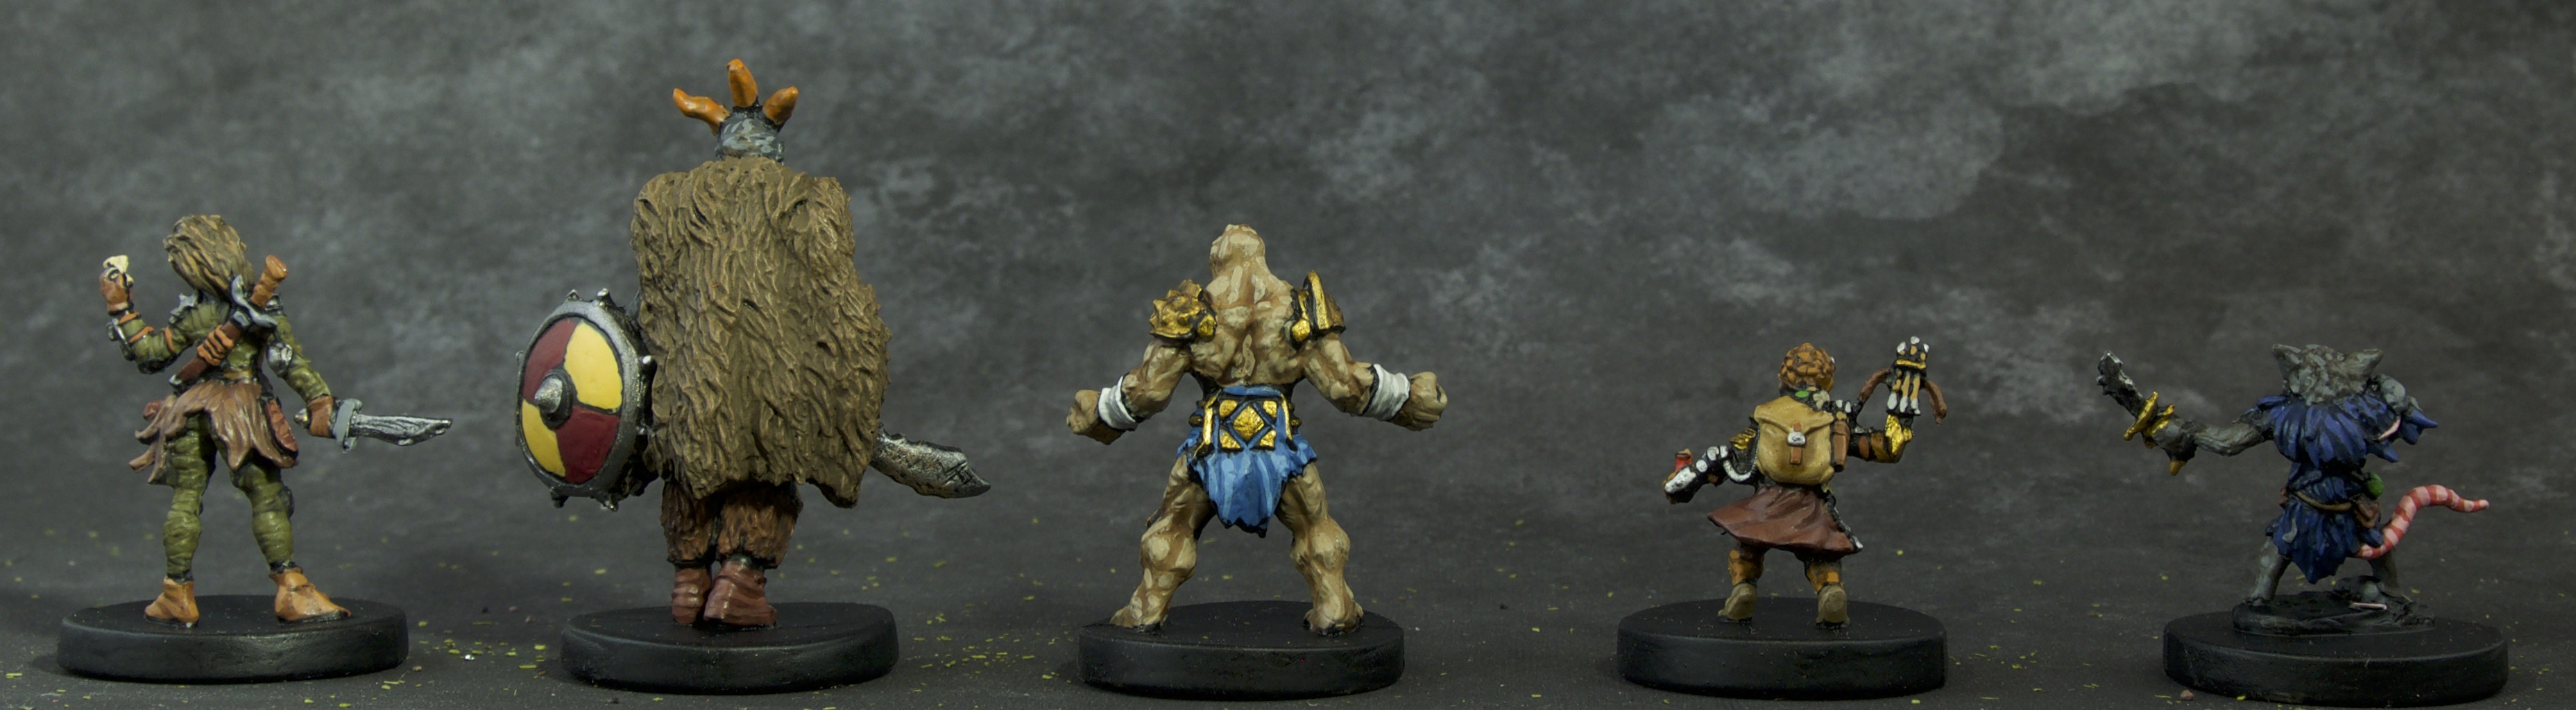 Painted Gloomhaven Miniatures